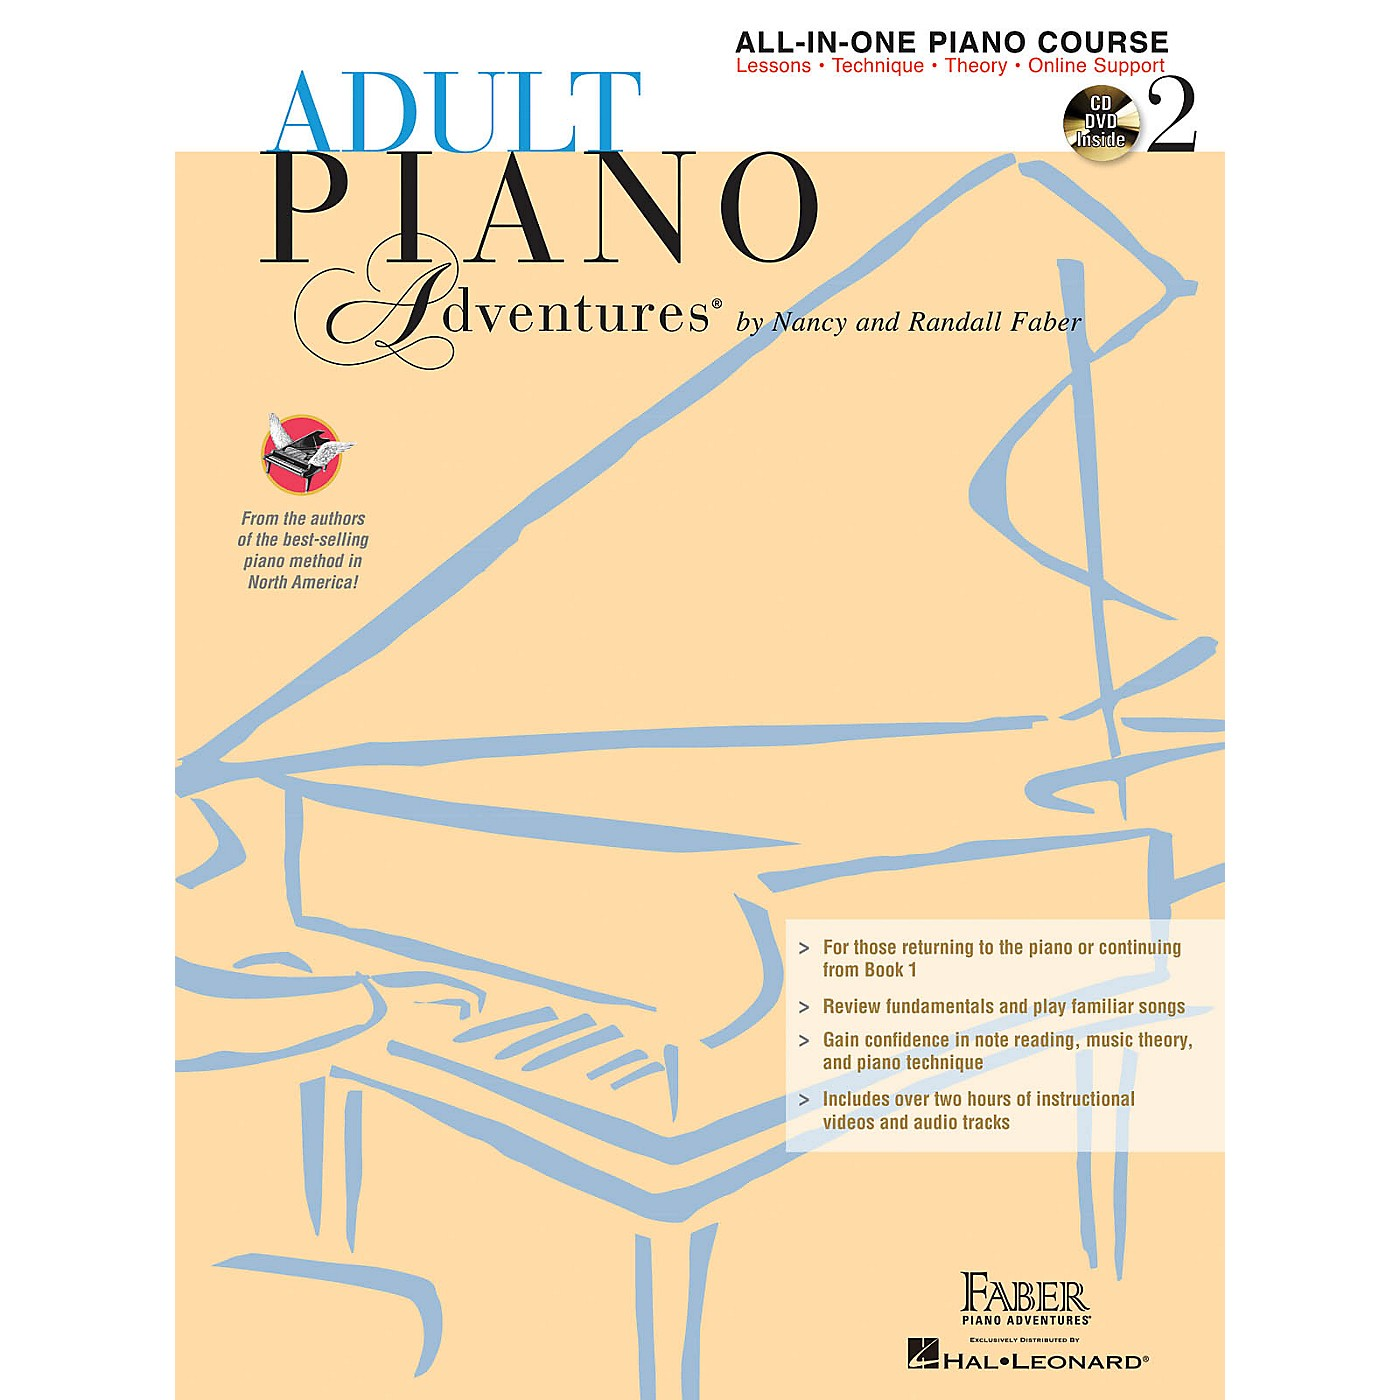 Faber Piano Adventures Adult Piano Adventures All-in-One Lesson Book 2 - Book with CD, DVD and Online Support thumbnail